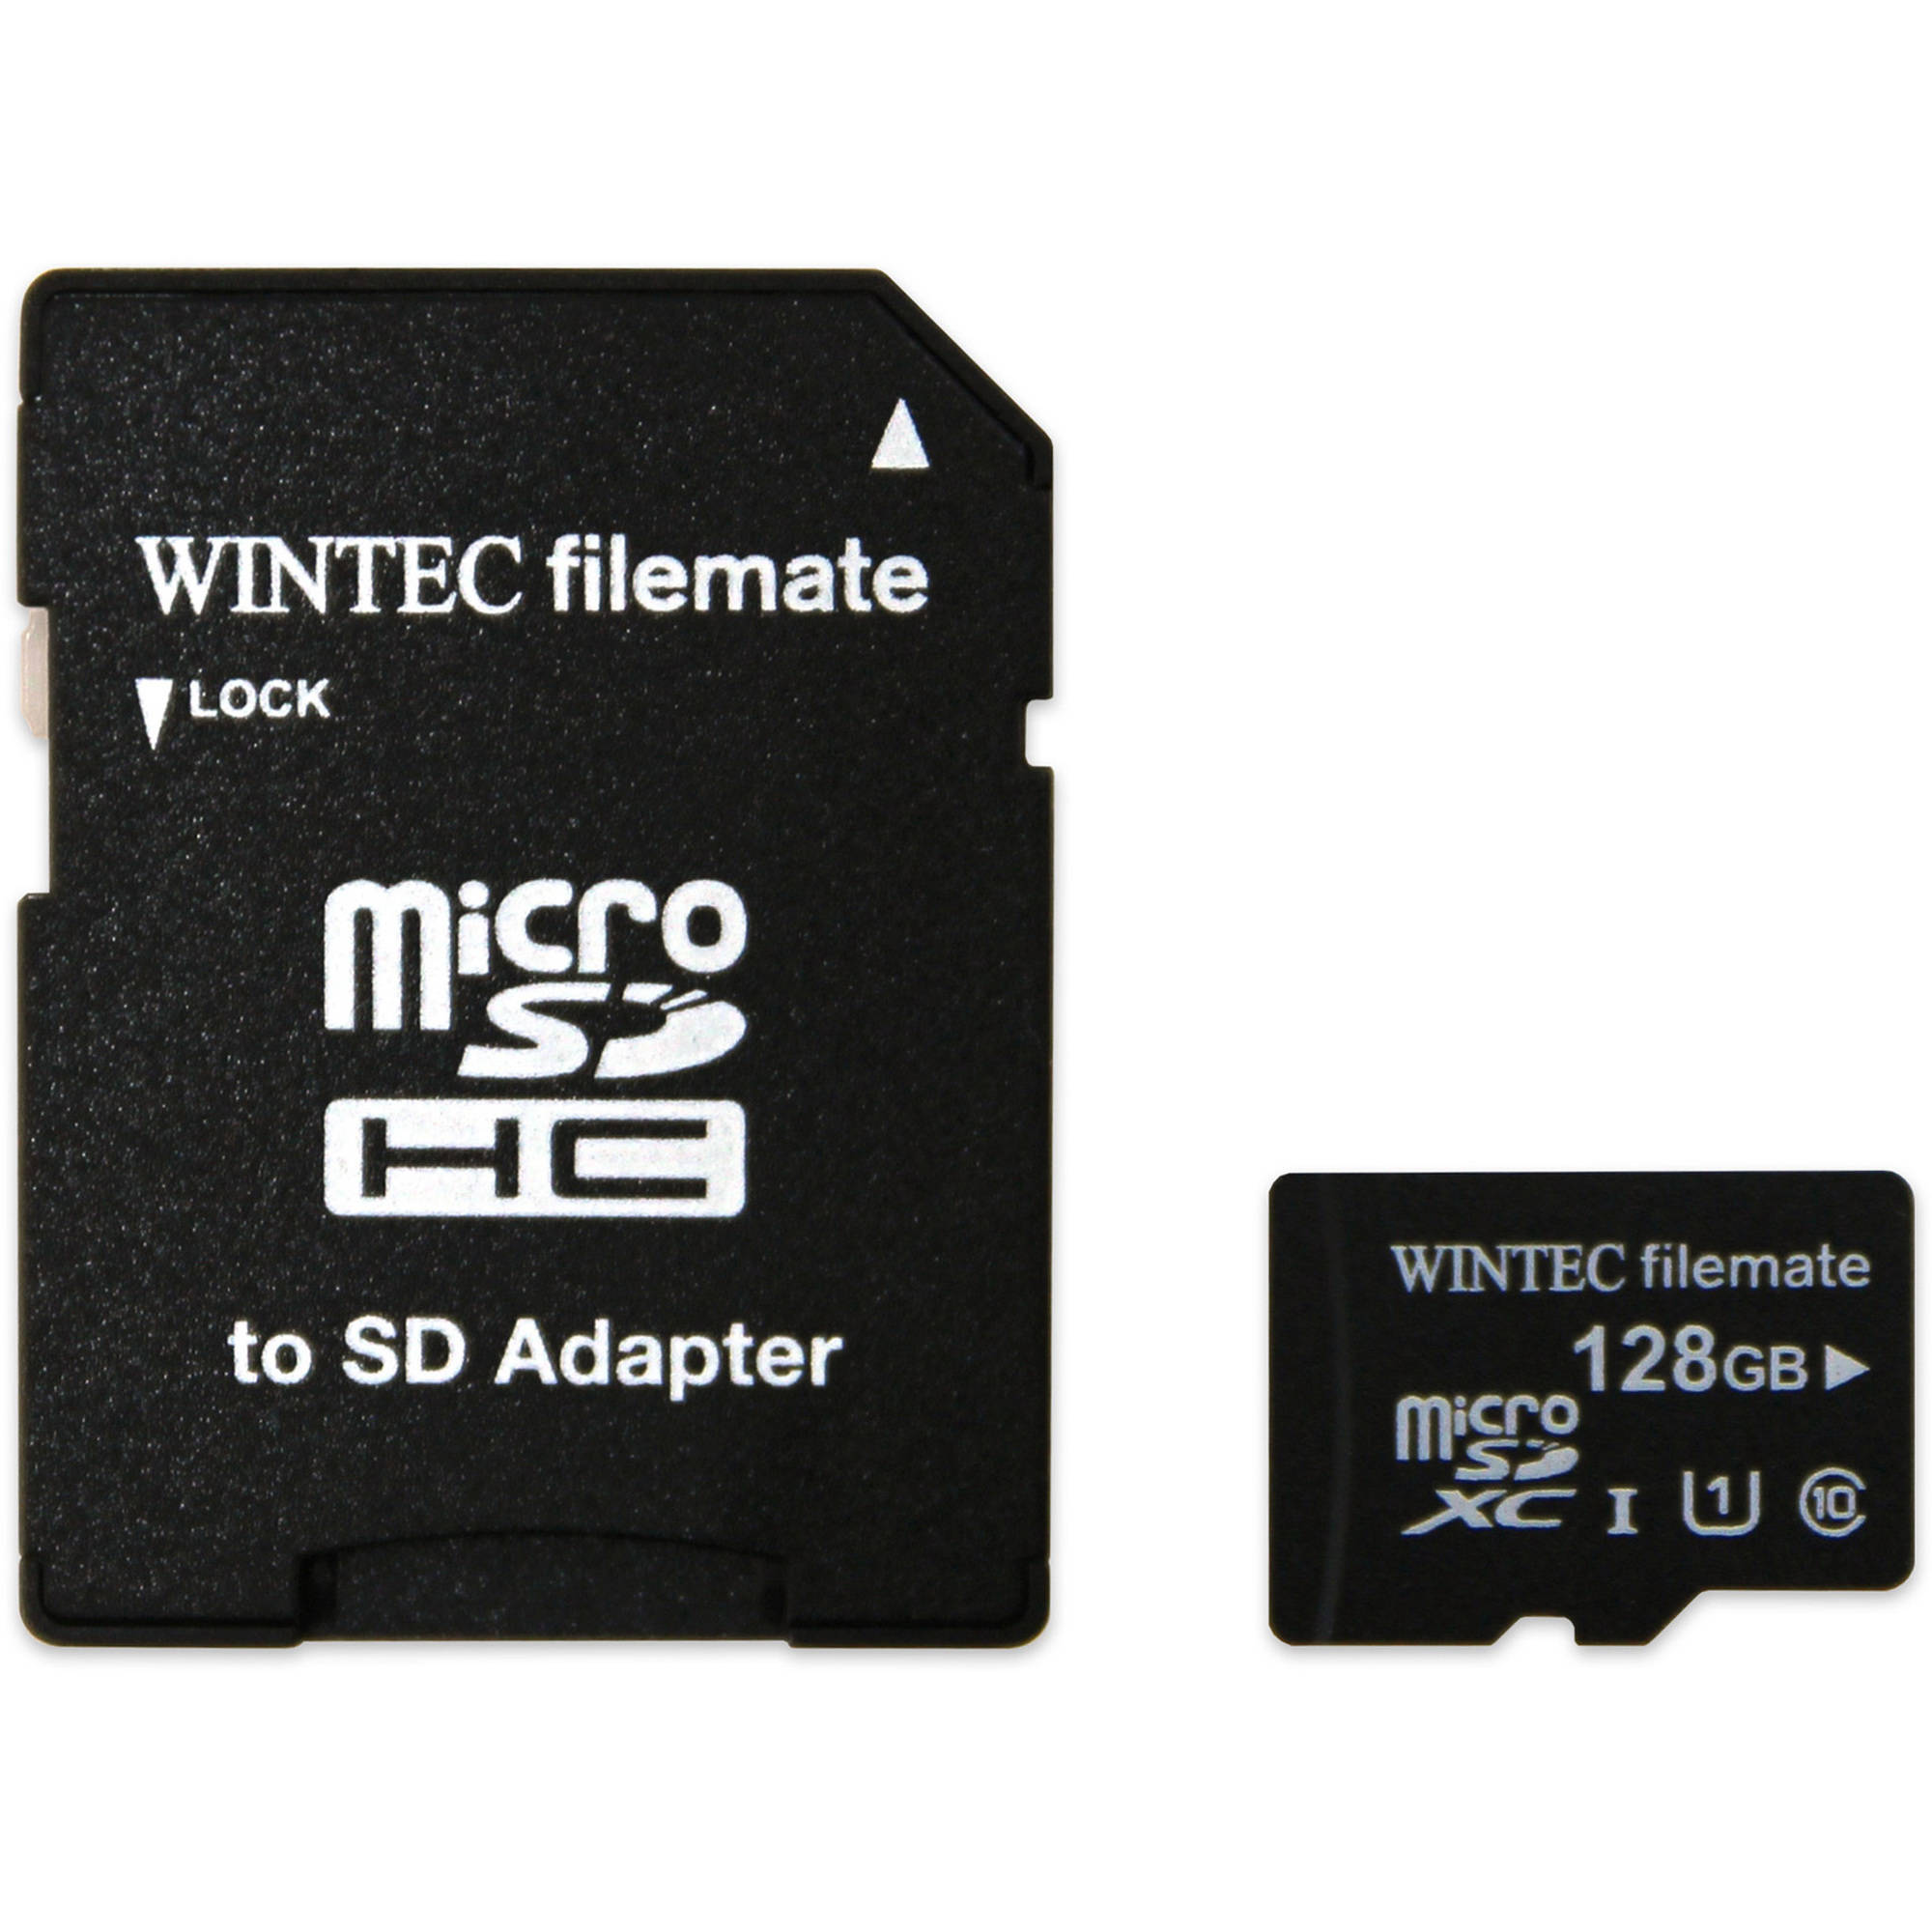 Wintec Filemate 128GB microSDXC Card with Adapter